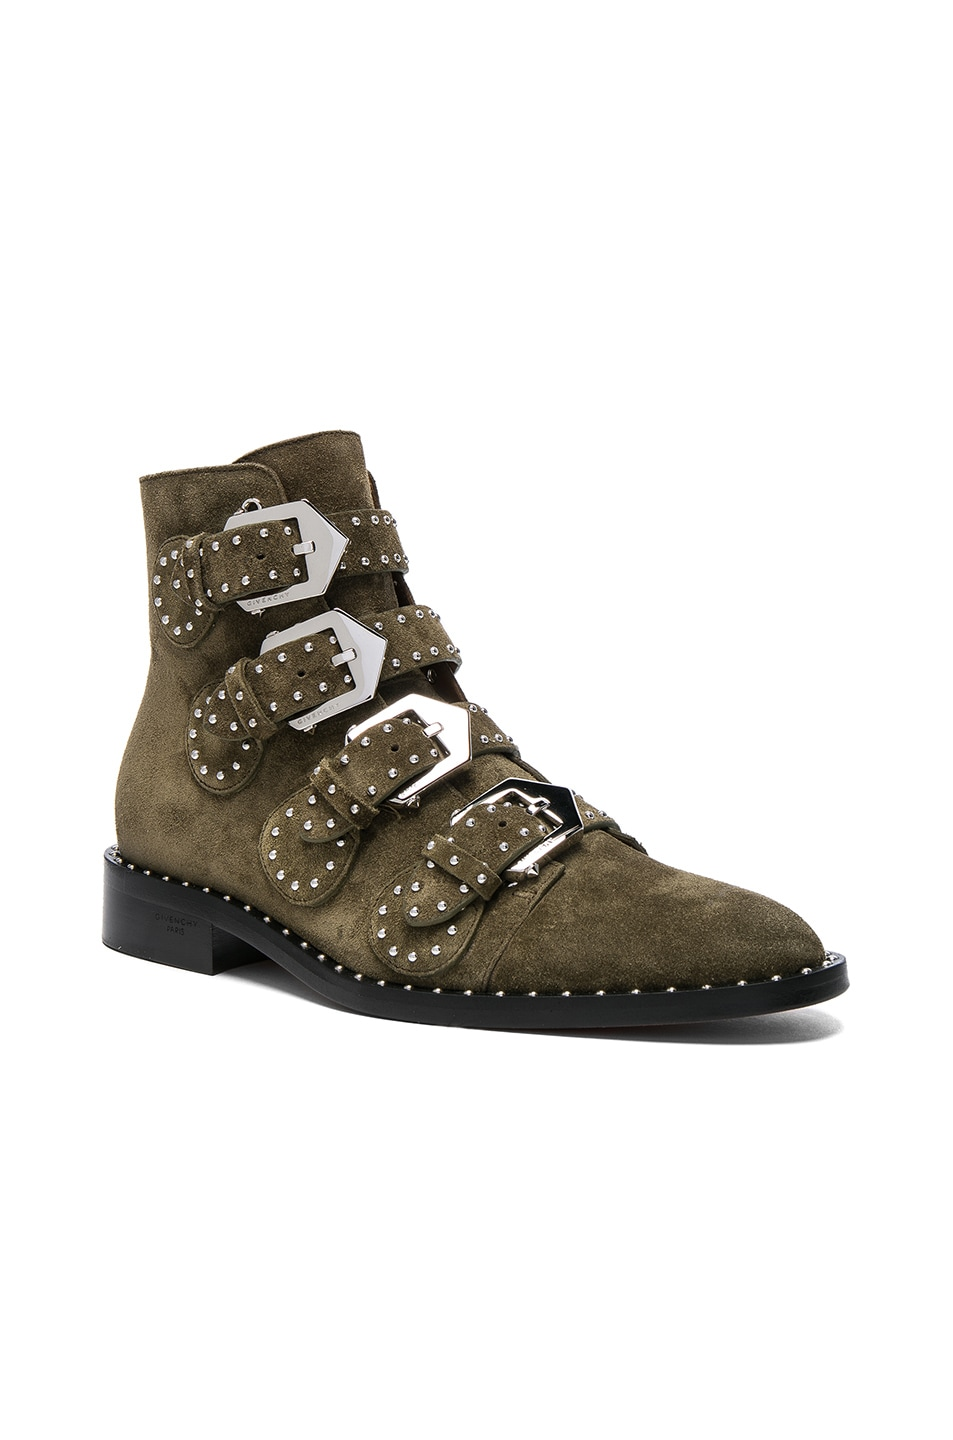 Image 2 of Givenchy Elegant Studded Suede Ankle Boots in Khaki